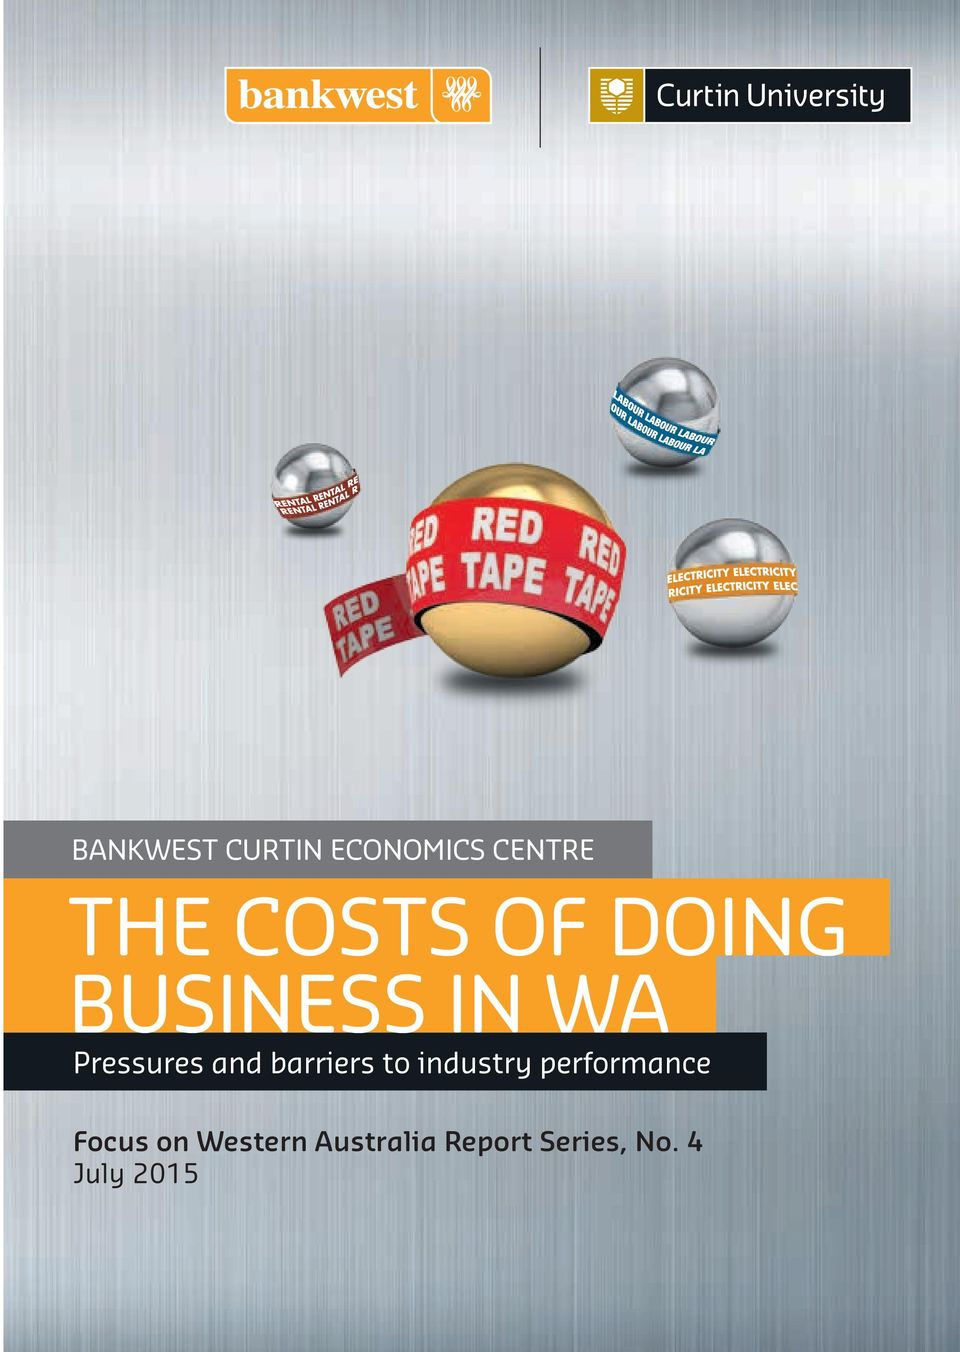 barriers to industry performance Focus on